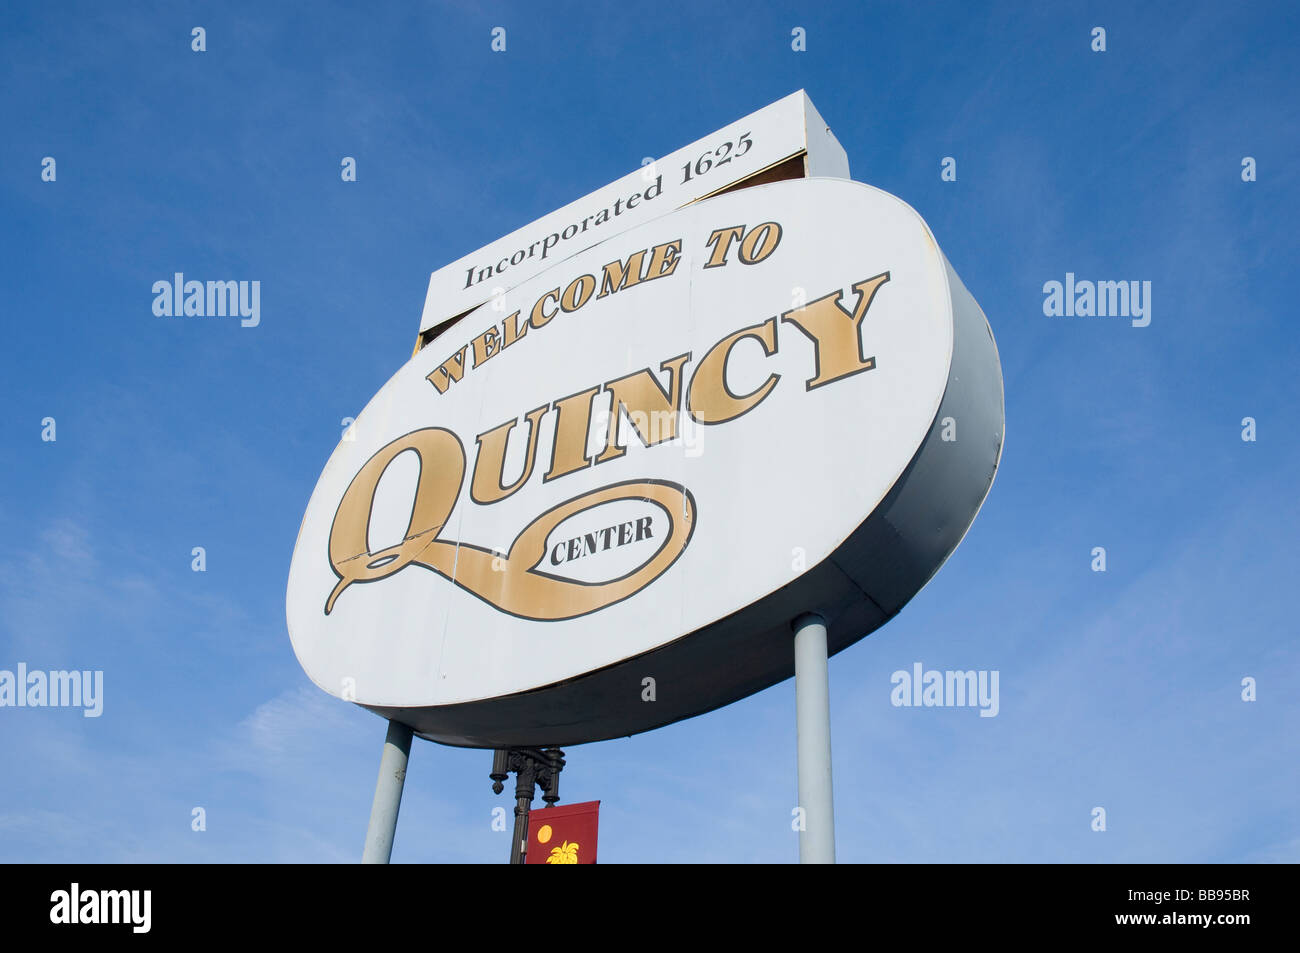 welcome to quincy center sign in quincy massachusetts usa Stock Photo